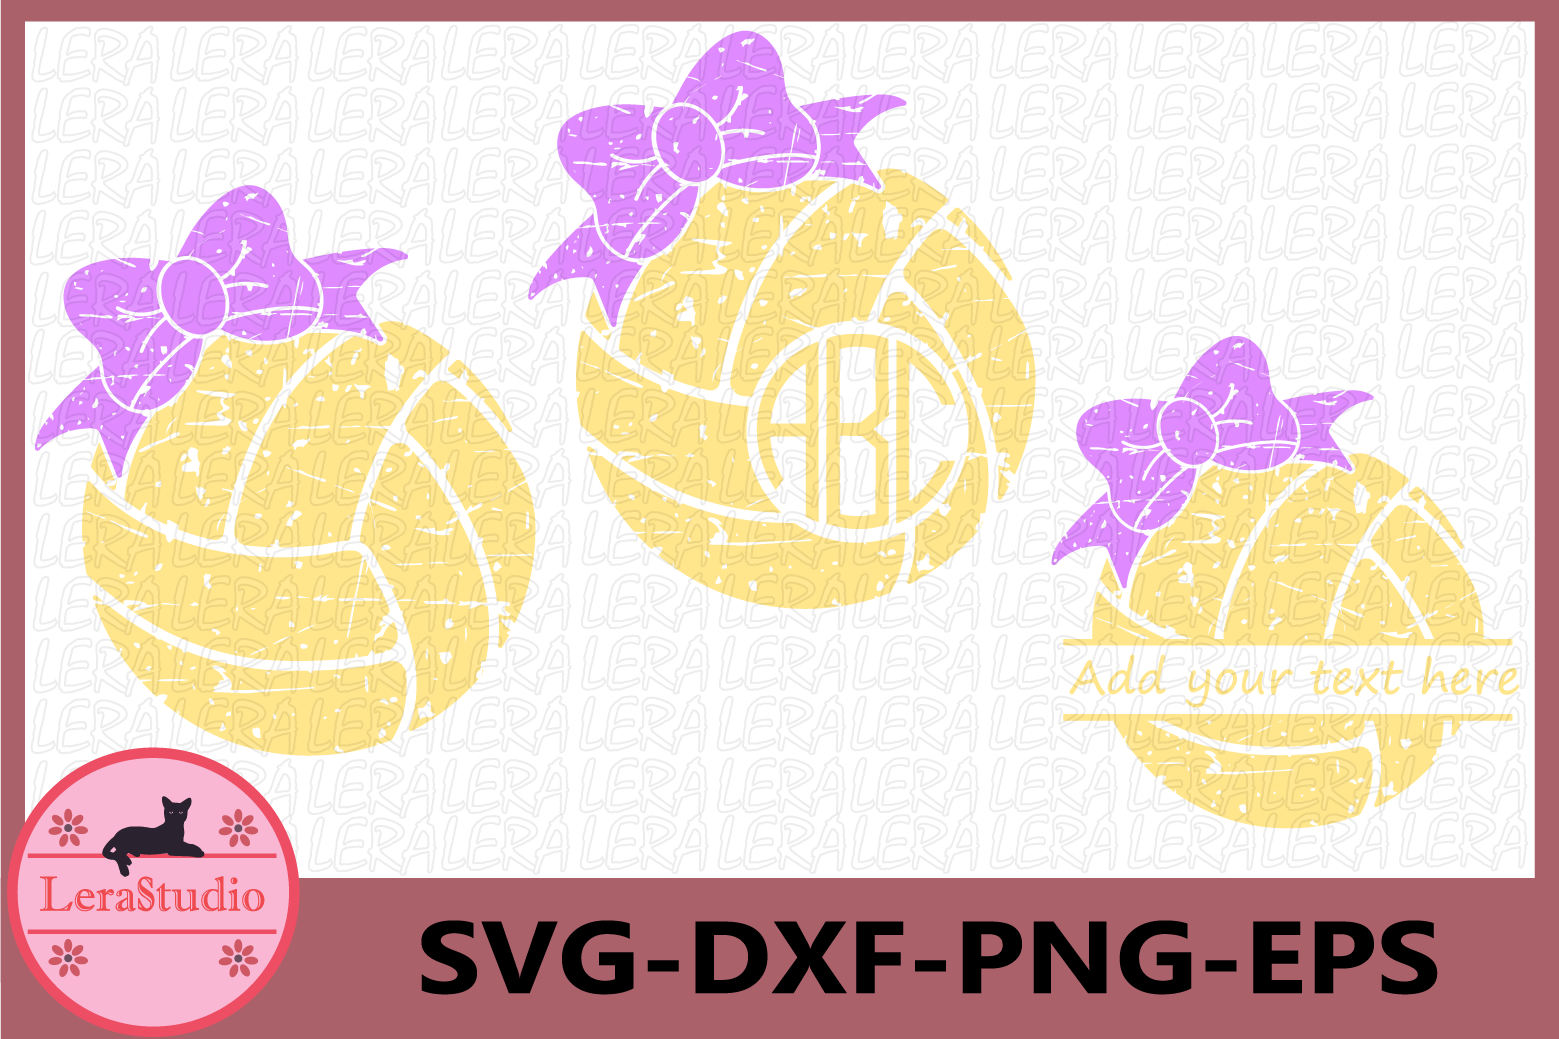 Volleyball files, Volleyball Grunge SVG, Sport Ball Monogram example image 1